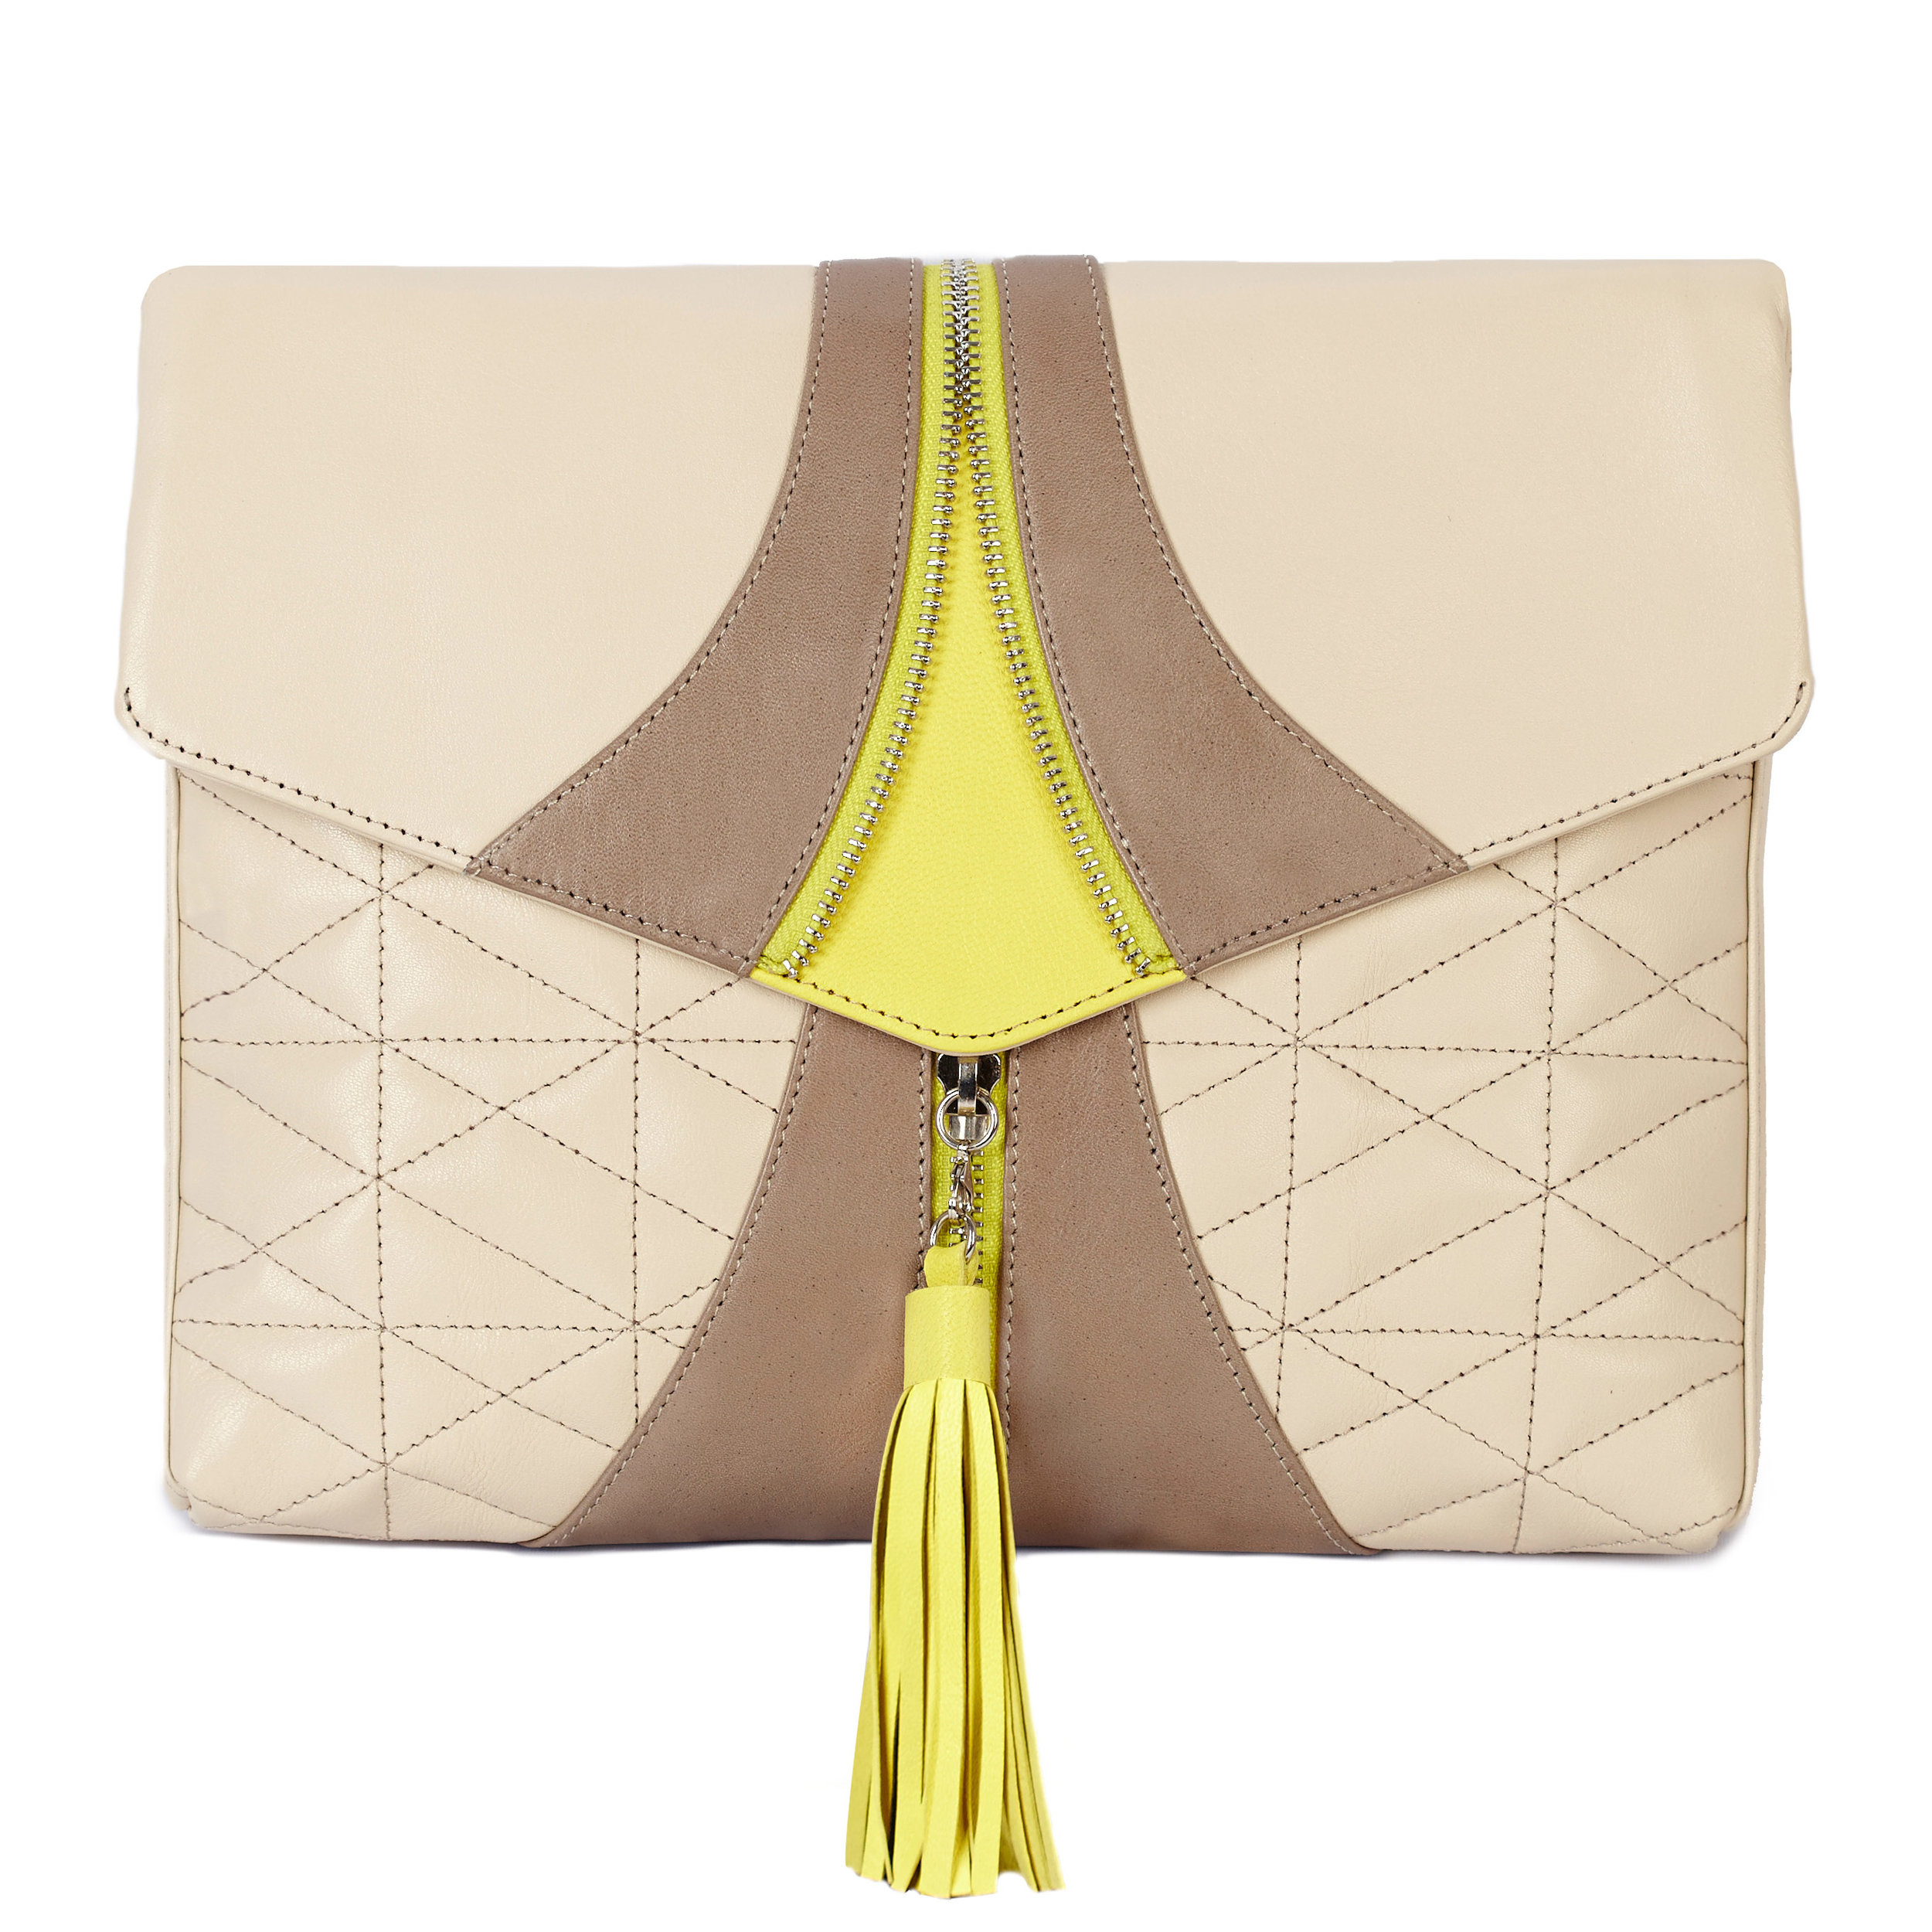 Luxe Beige | Soft Brown +Electric Daffodil.  - $445.00